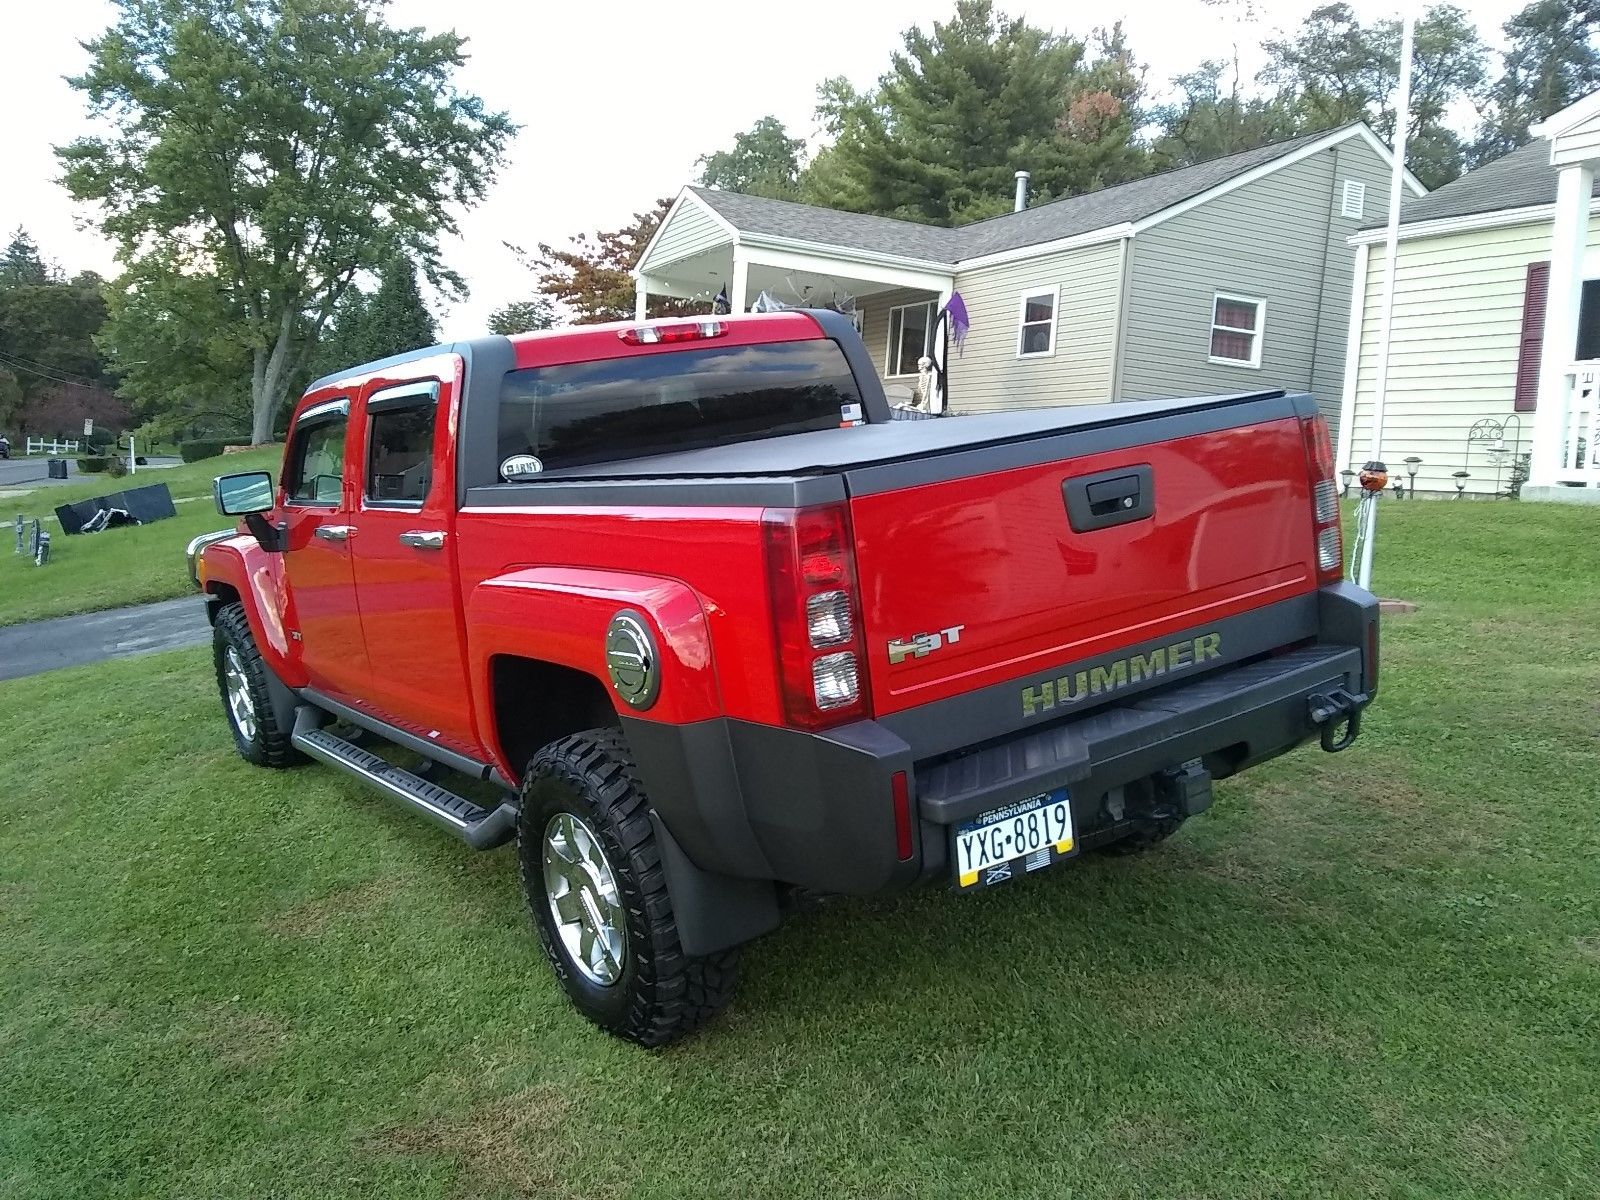 immaculate shape 2009 Hummer H3 lifted